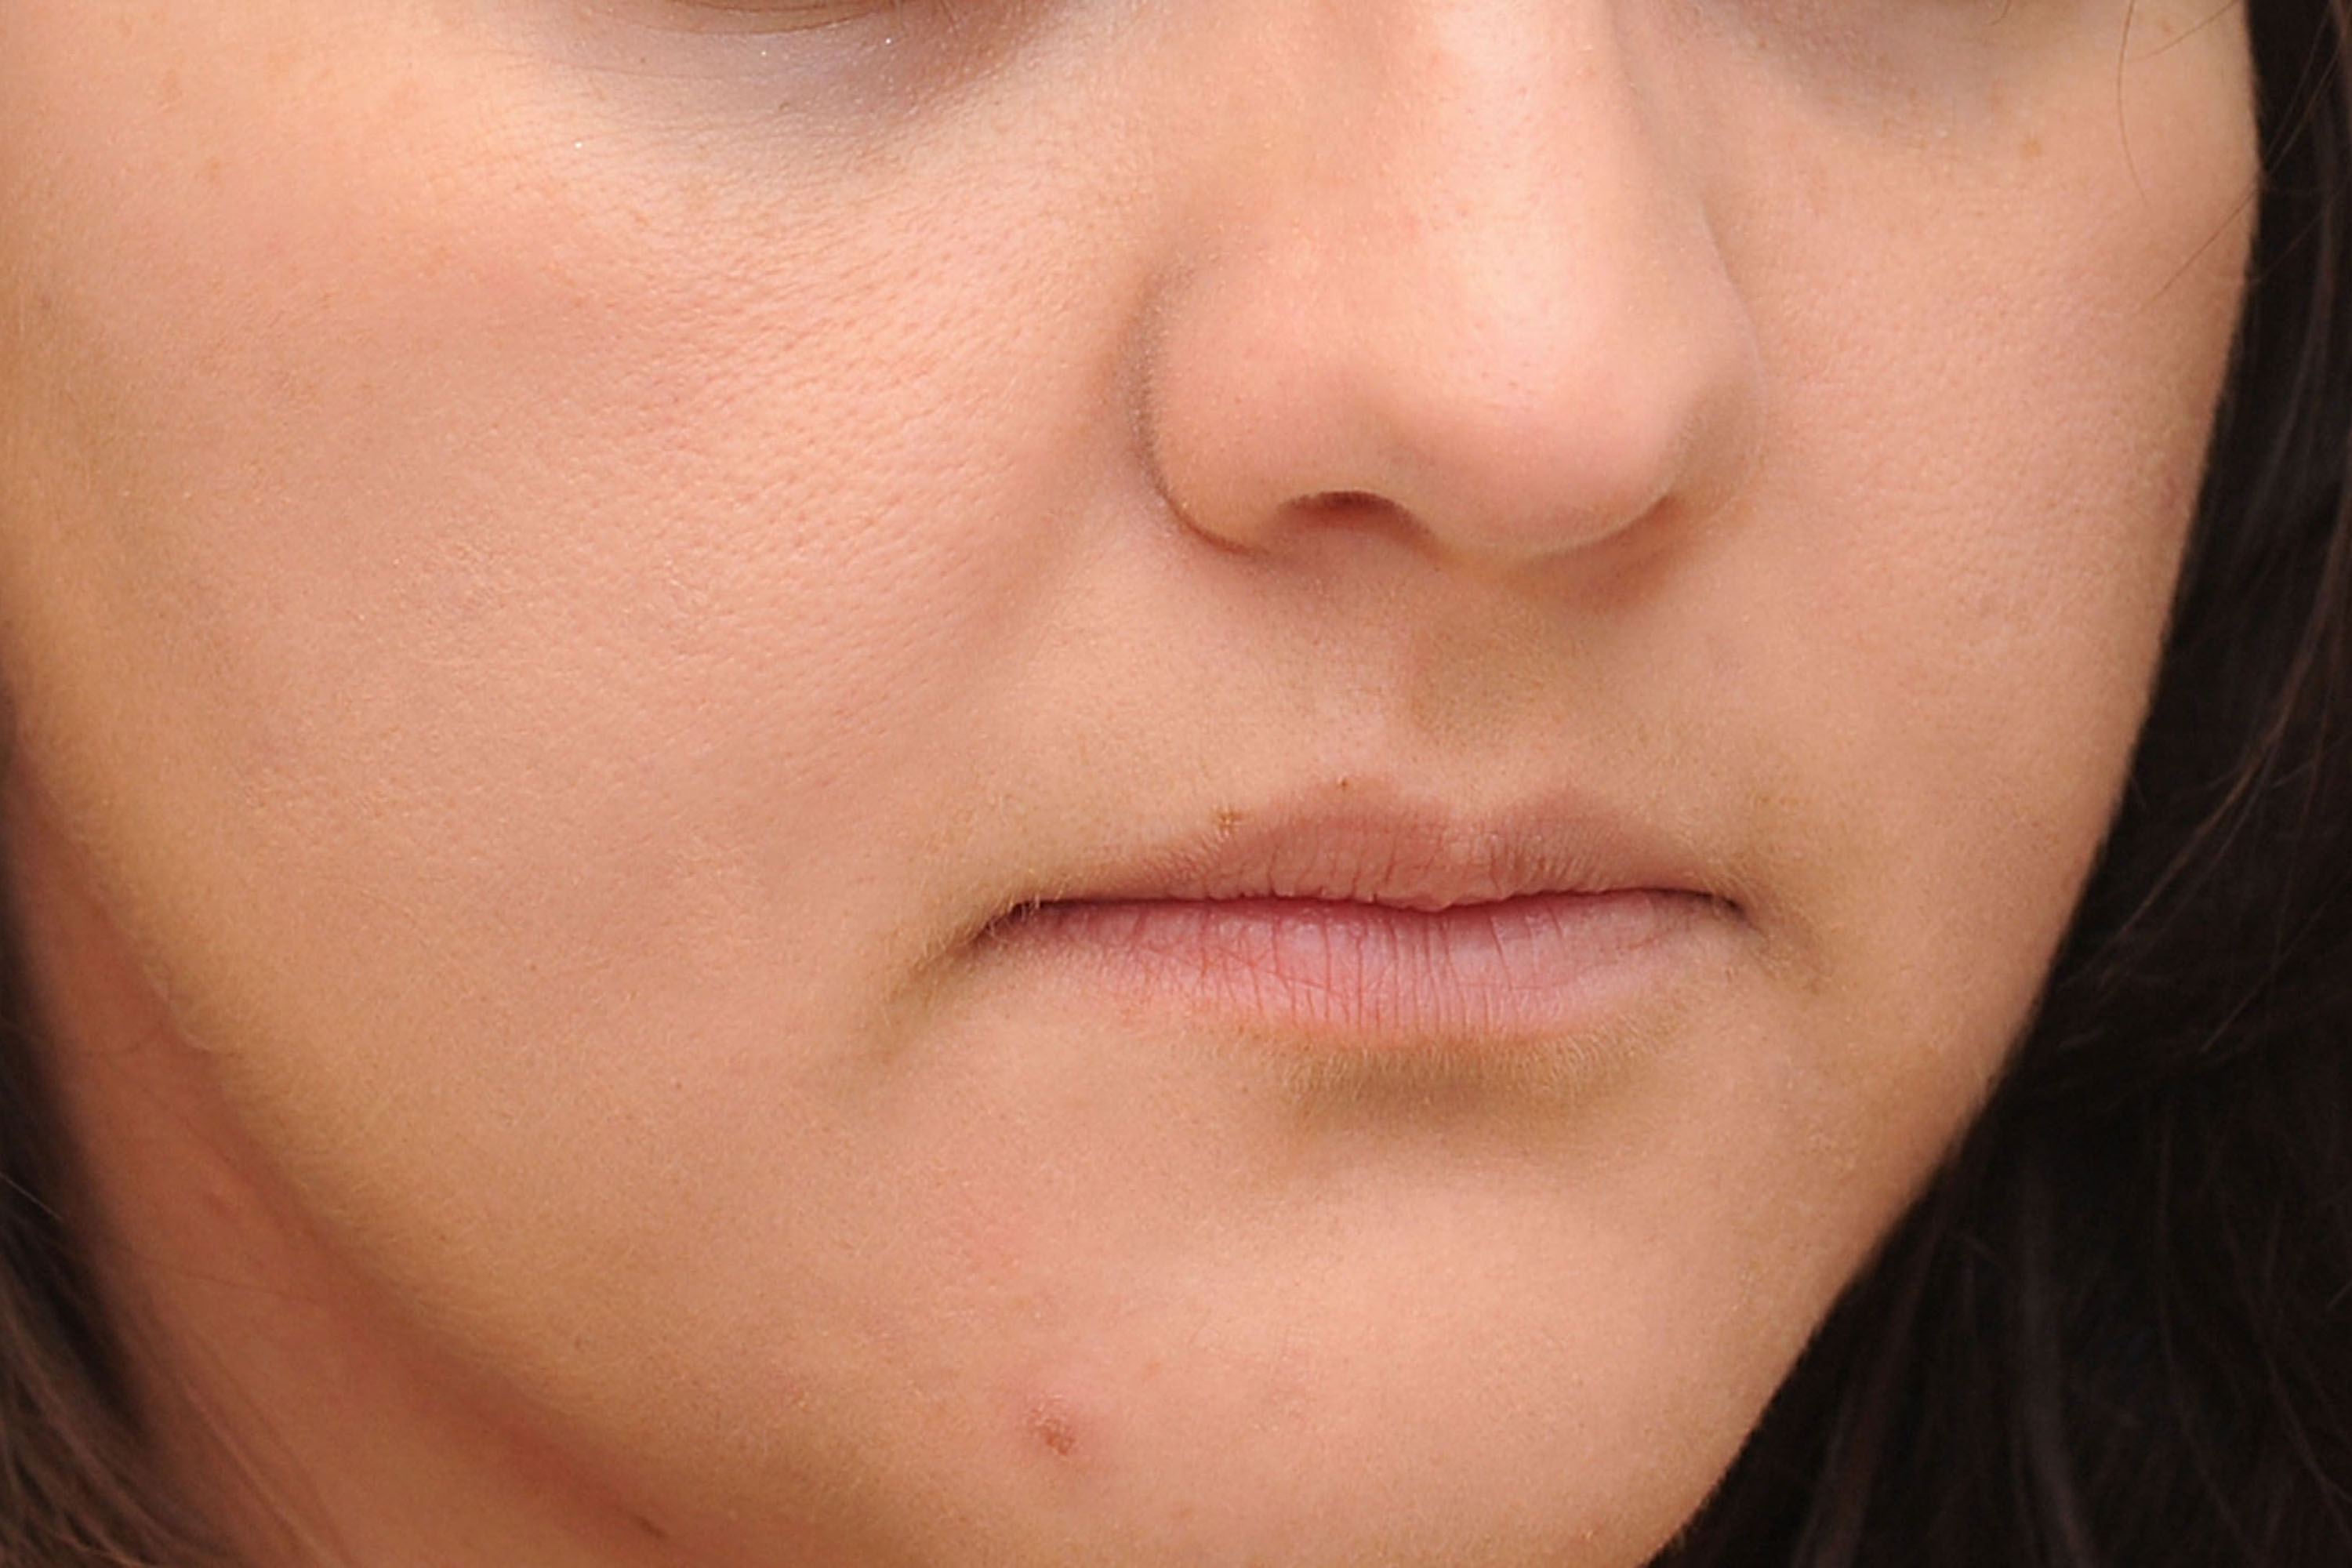 How to Reduce Pimple Swelling : Home Remedies to Get Rid of Pimple